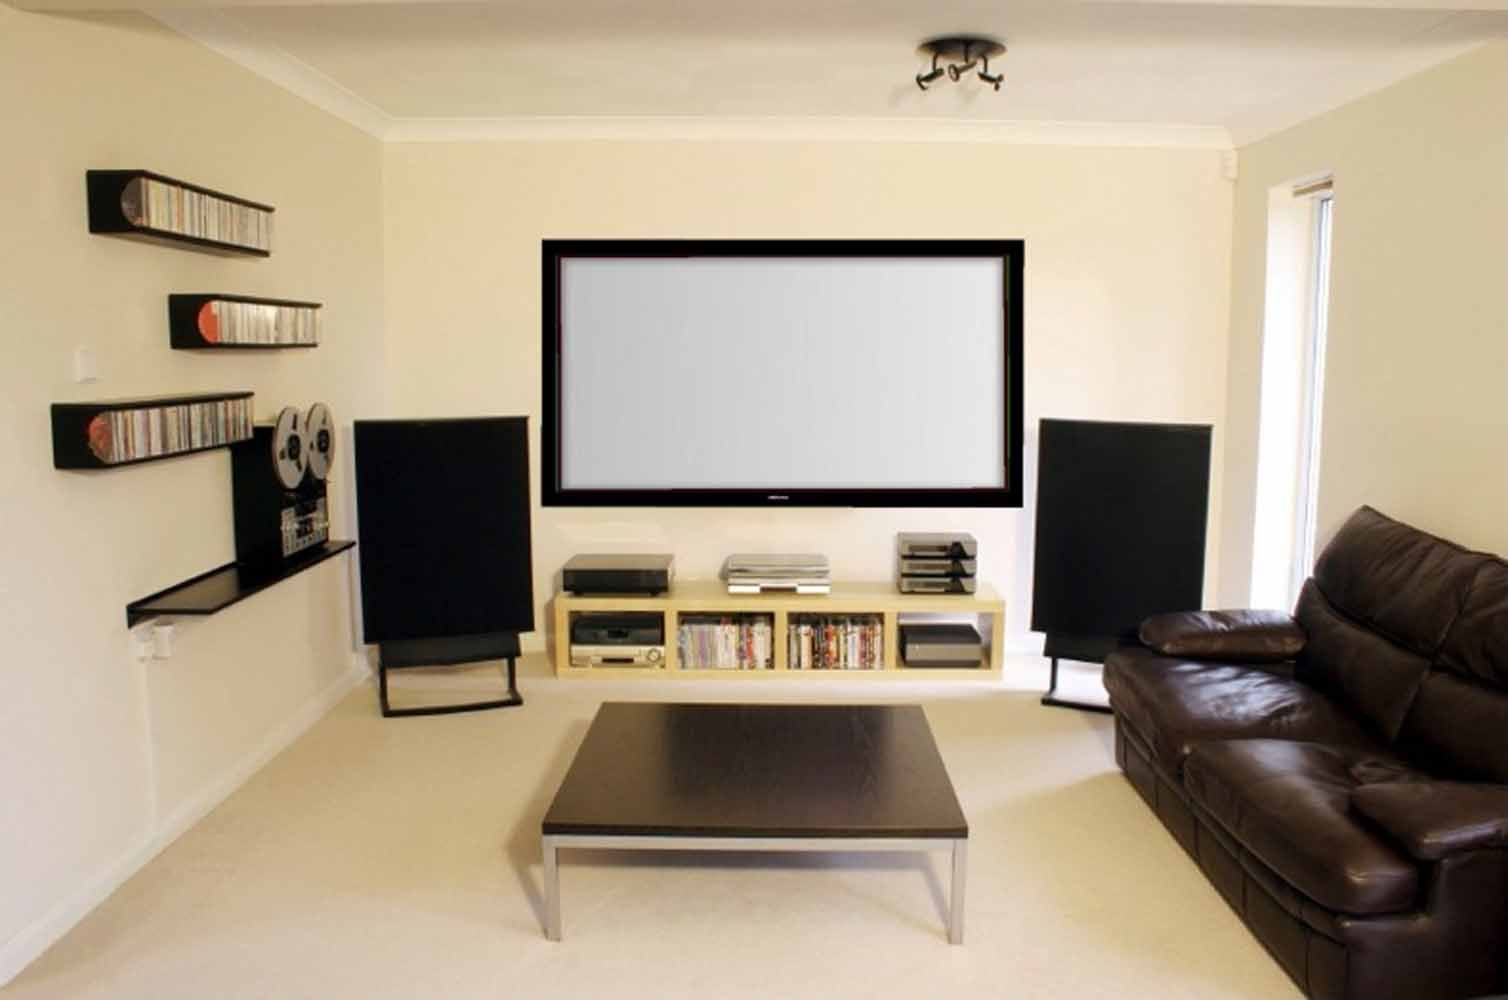 Home Entertainment Room Ideas Design | Entertainment at its Finest ...